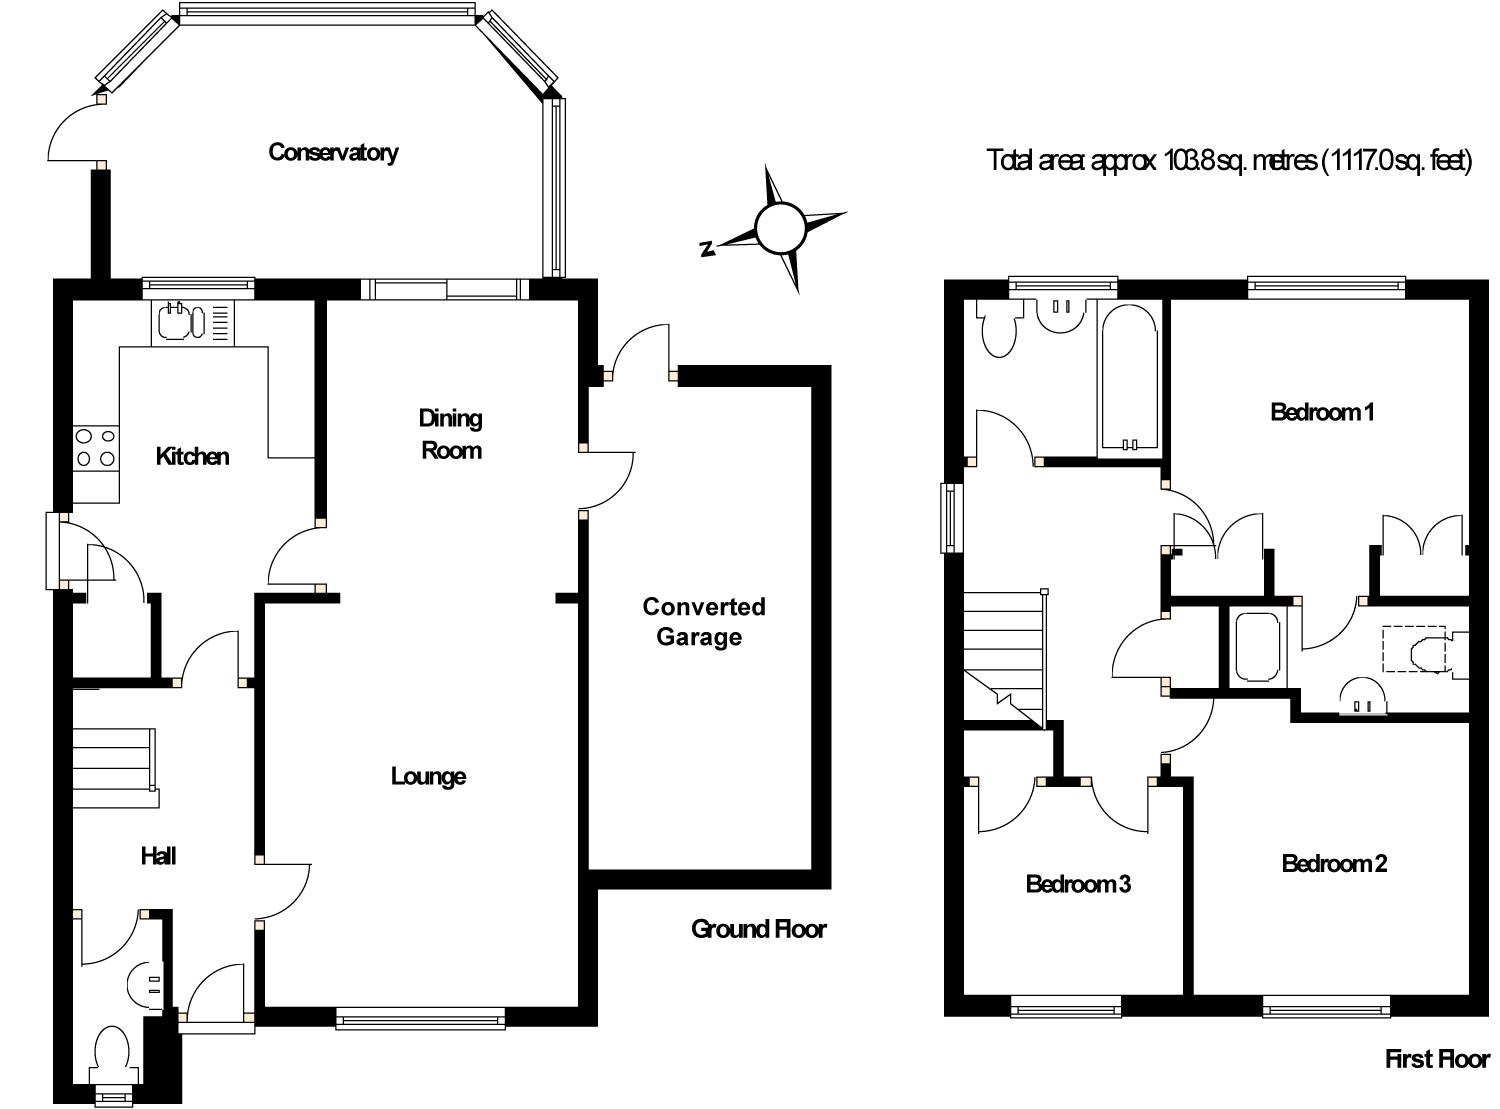 Property Details For 18 Gatley Drive Burpham Guildford Gu4